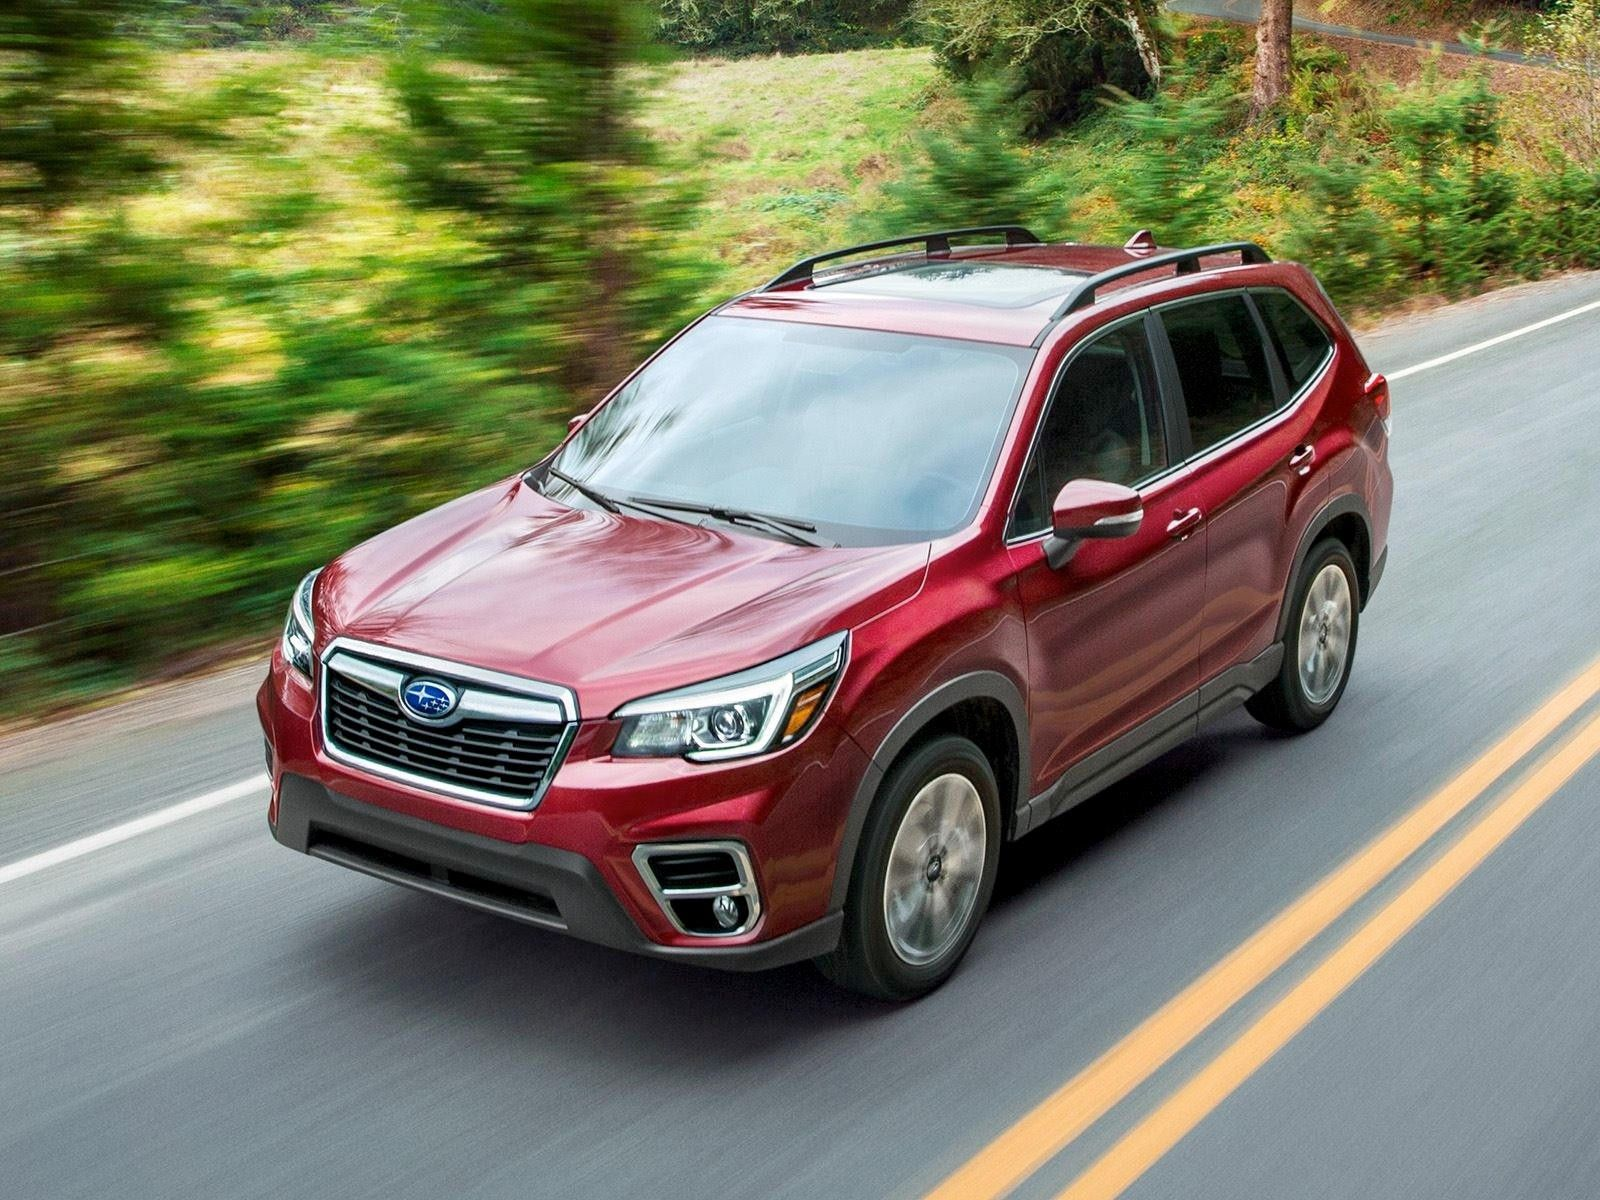 020 Subaru Forester Crossover 3rd Quarter View